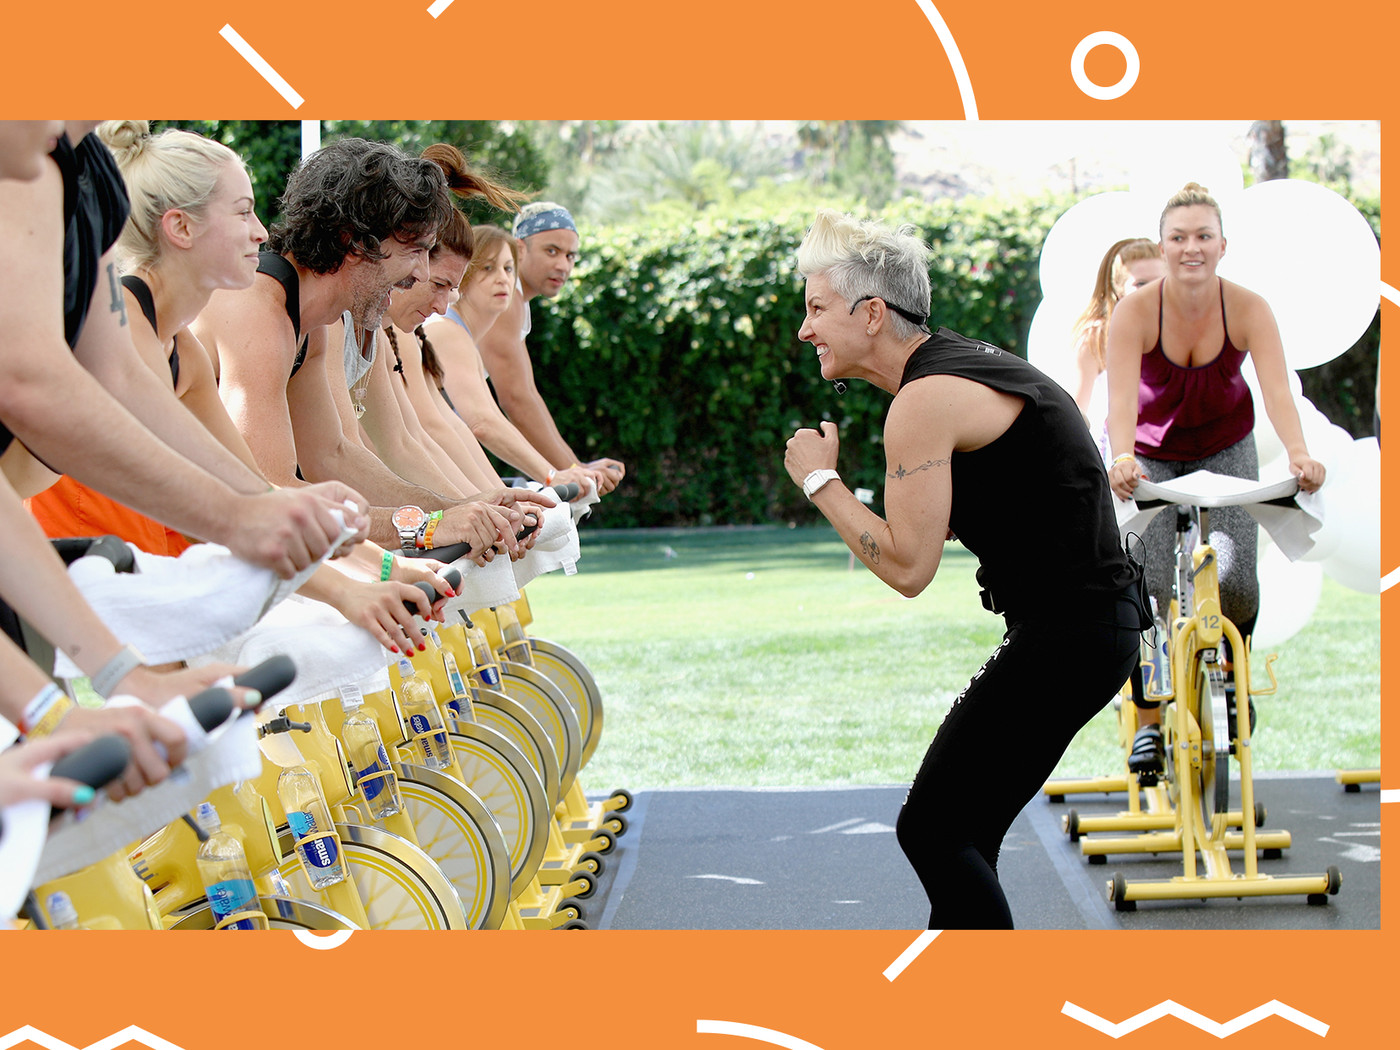 Flywheel And Soulcycle Struggling Against Peloton And Cheap Classes Vox